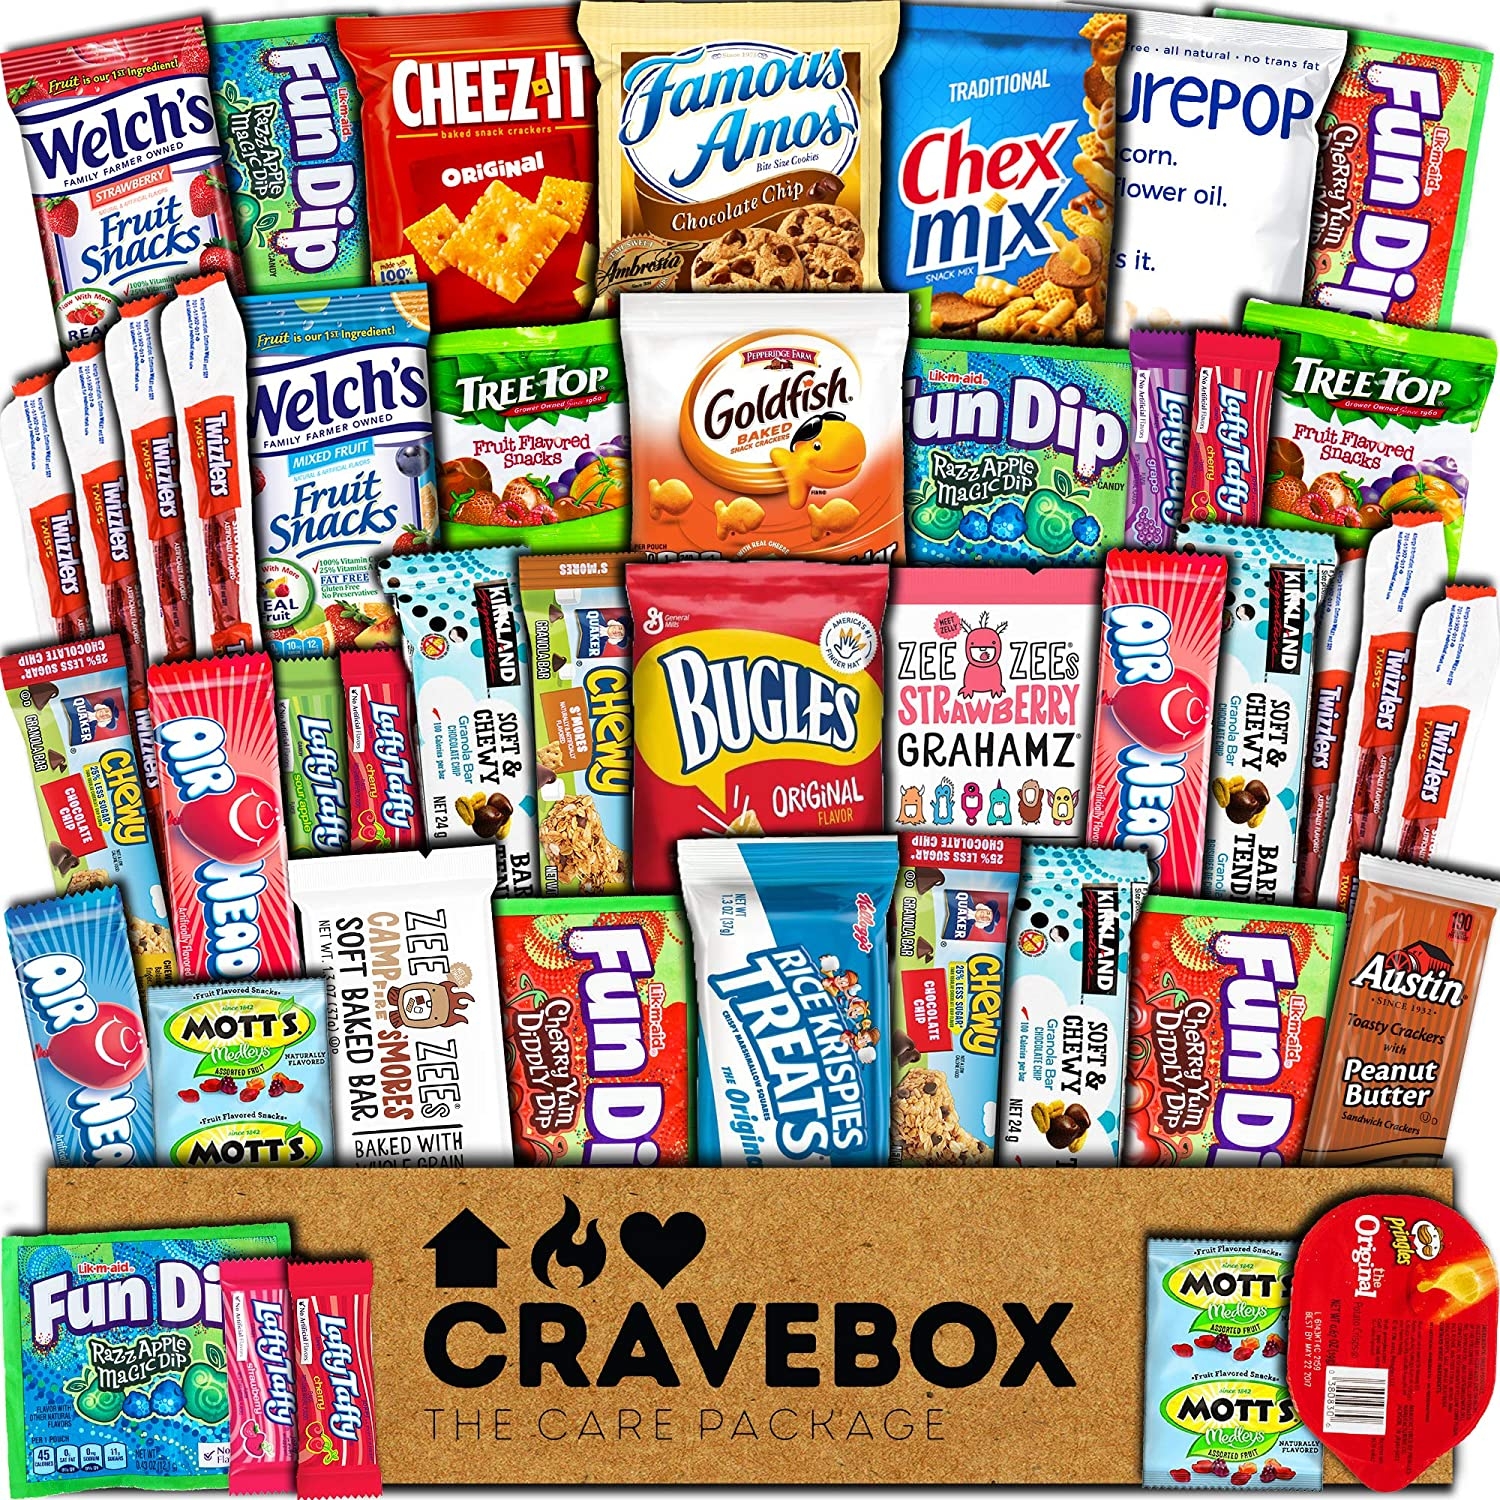 CraveBox Care Package (45 Count) Snacks Cookies Bars Chips Candy Ultimate Variety Gift Box Pack Assortment Basket Bundle Mixed Bulk Sampler Treats College Students Office Fall Final Exams Christmas